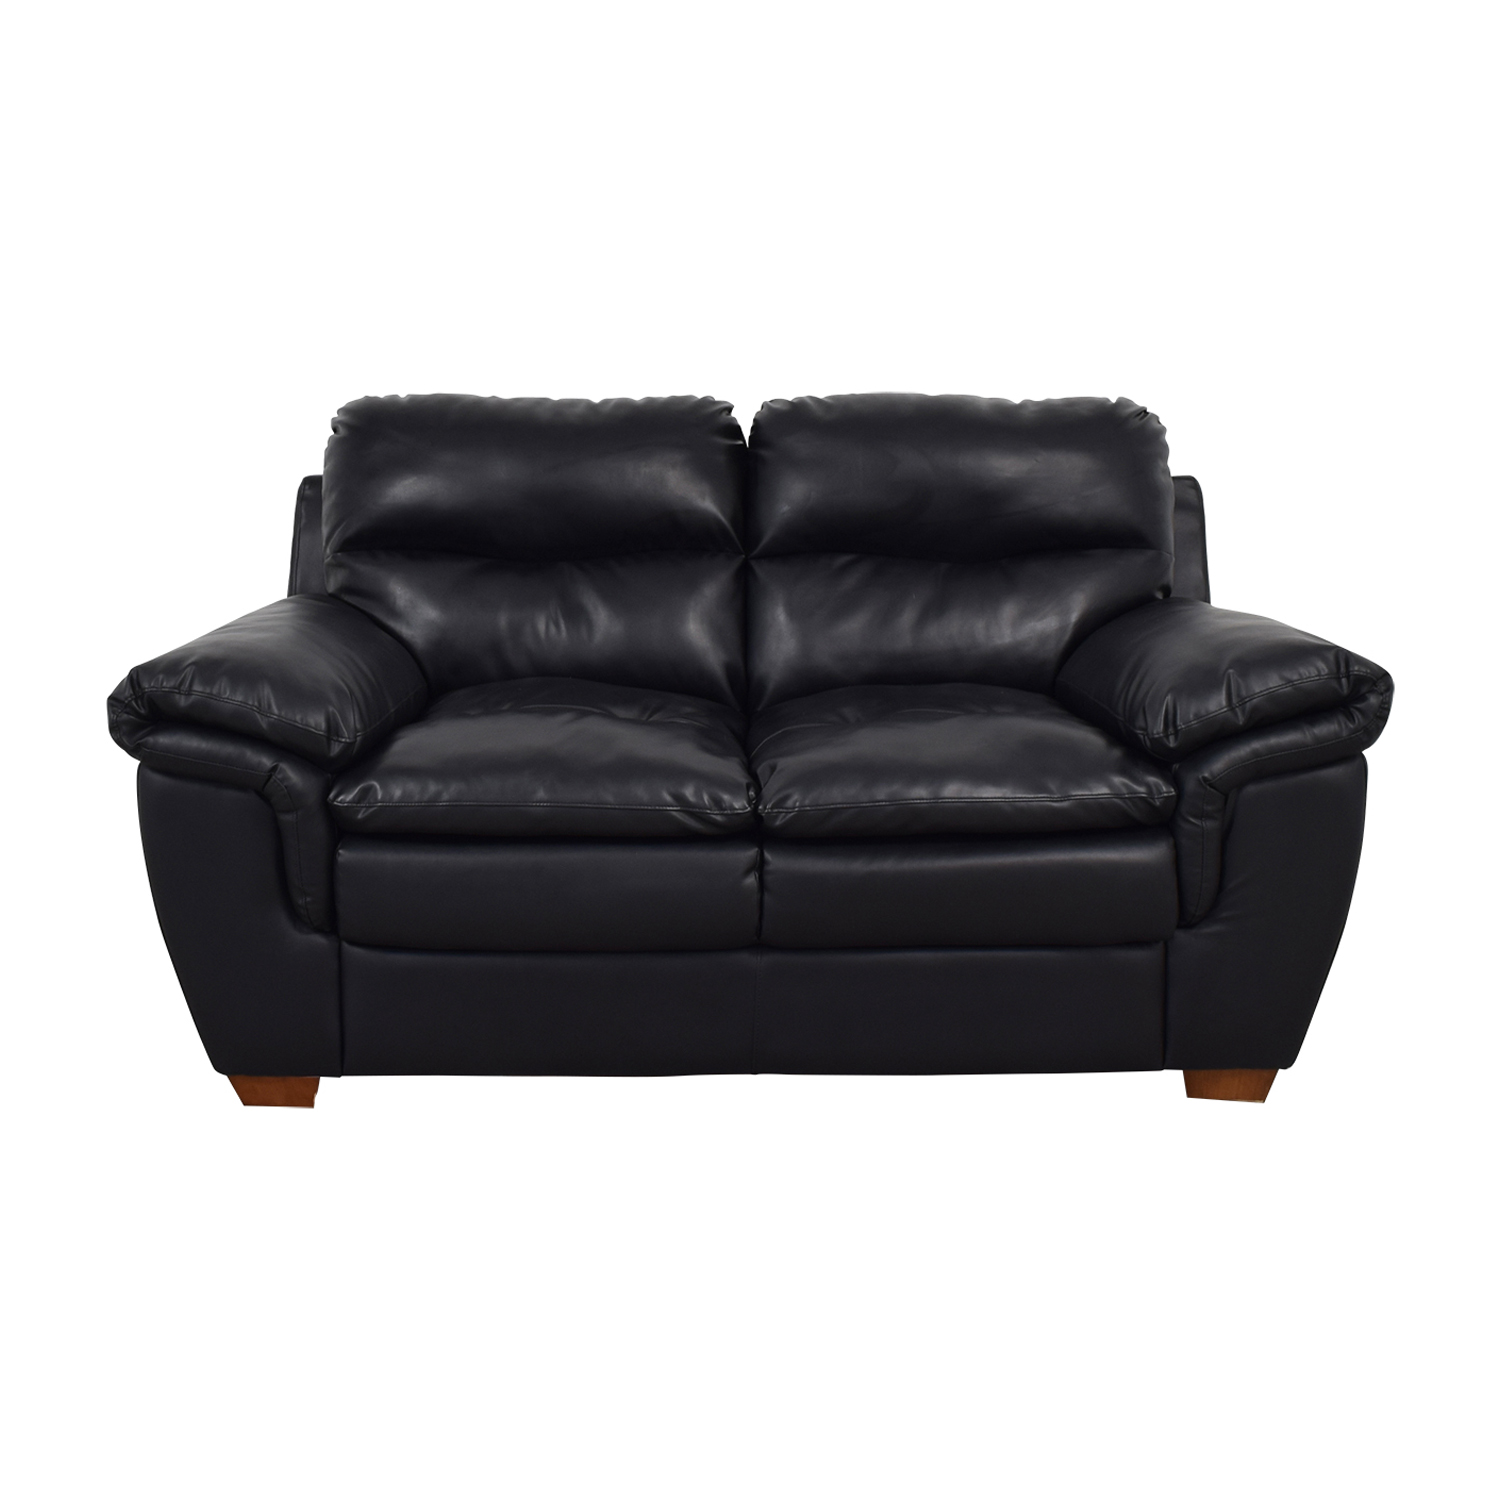 Jennifer Furniture Wilton Black Loveseat sale